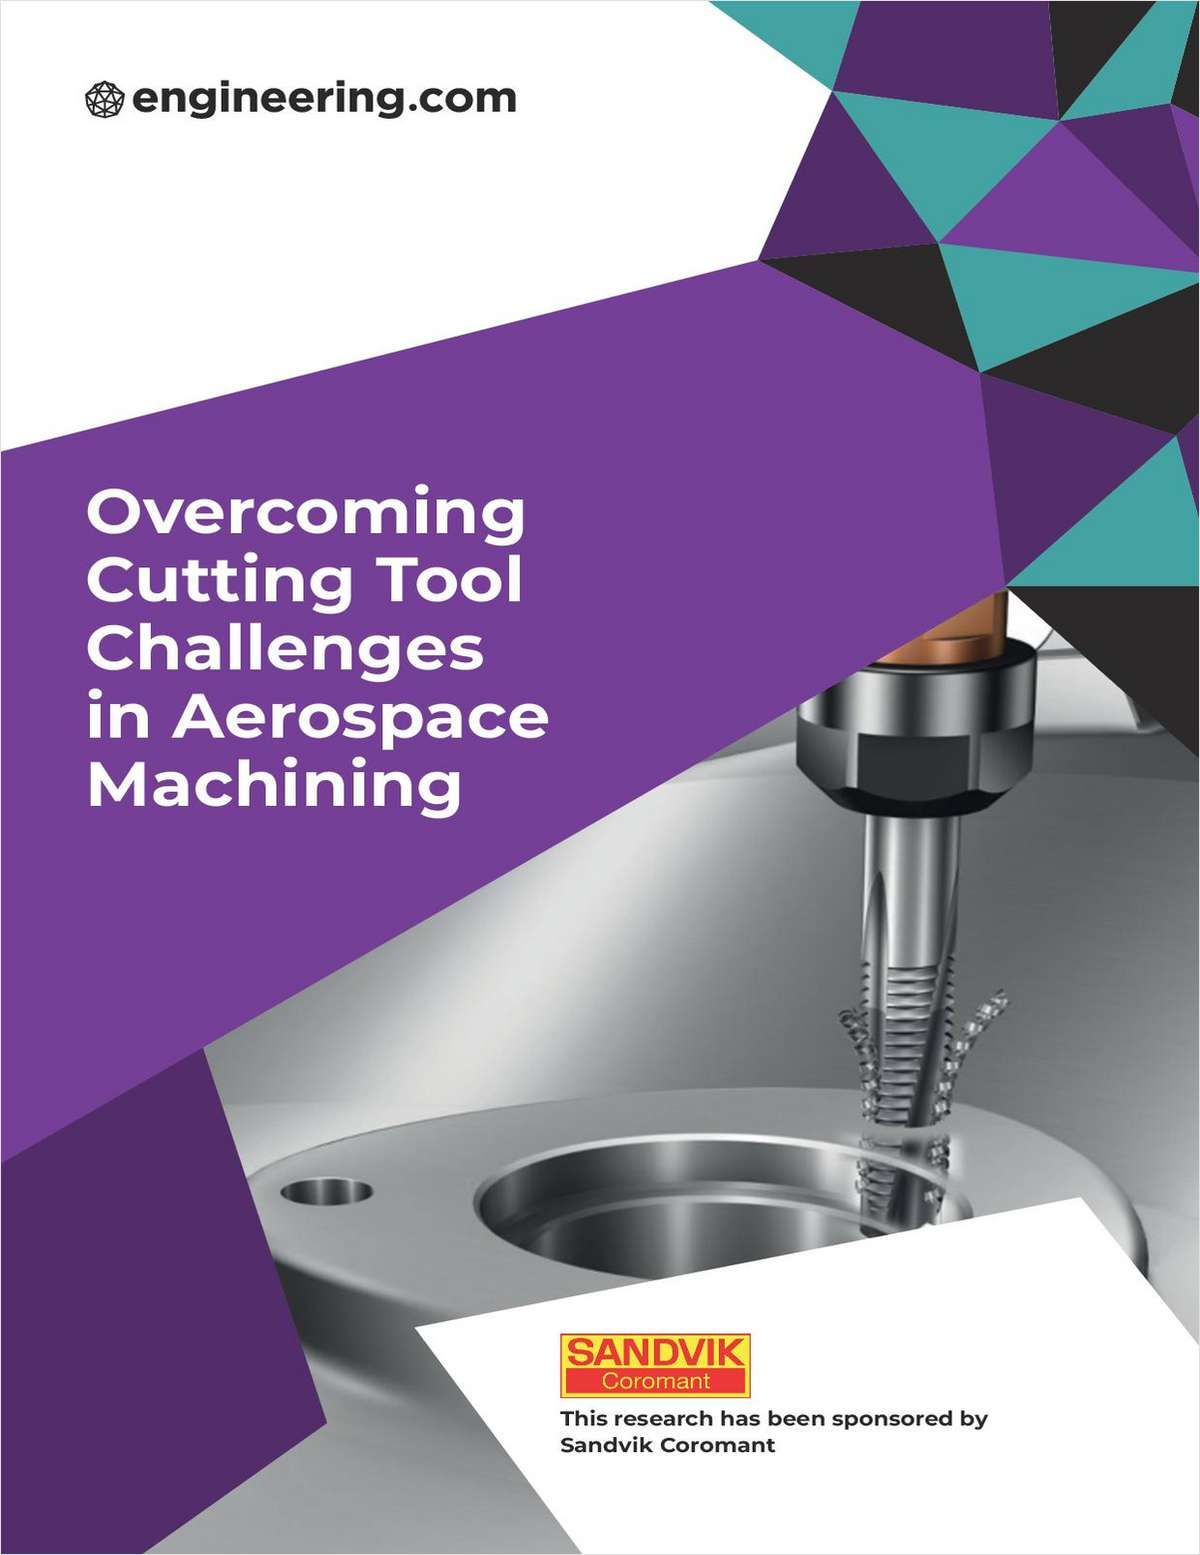 Overcoming Cutting Tool Challenges in Aerospace Machining